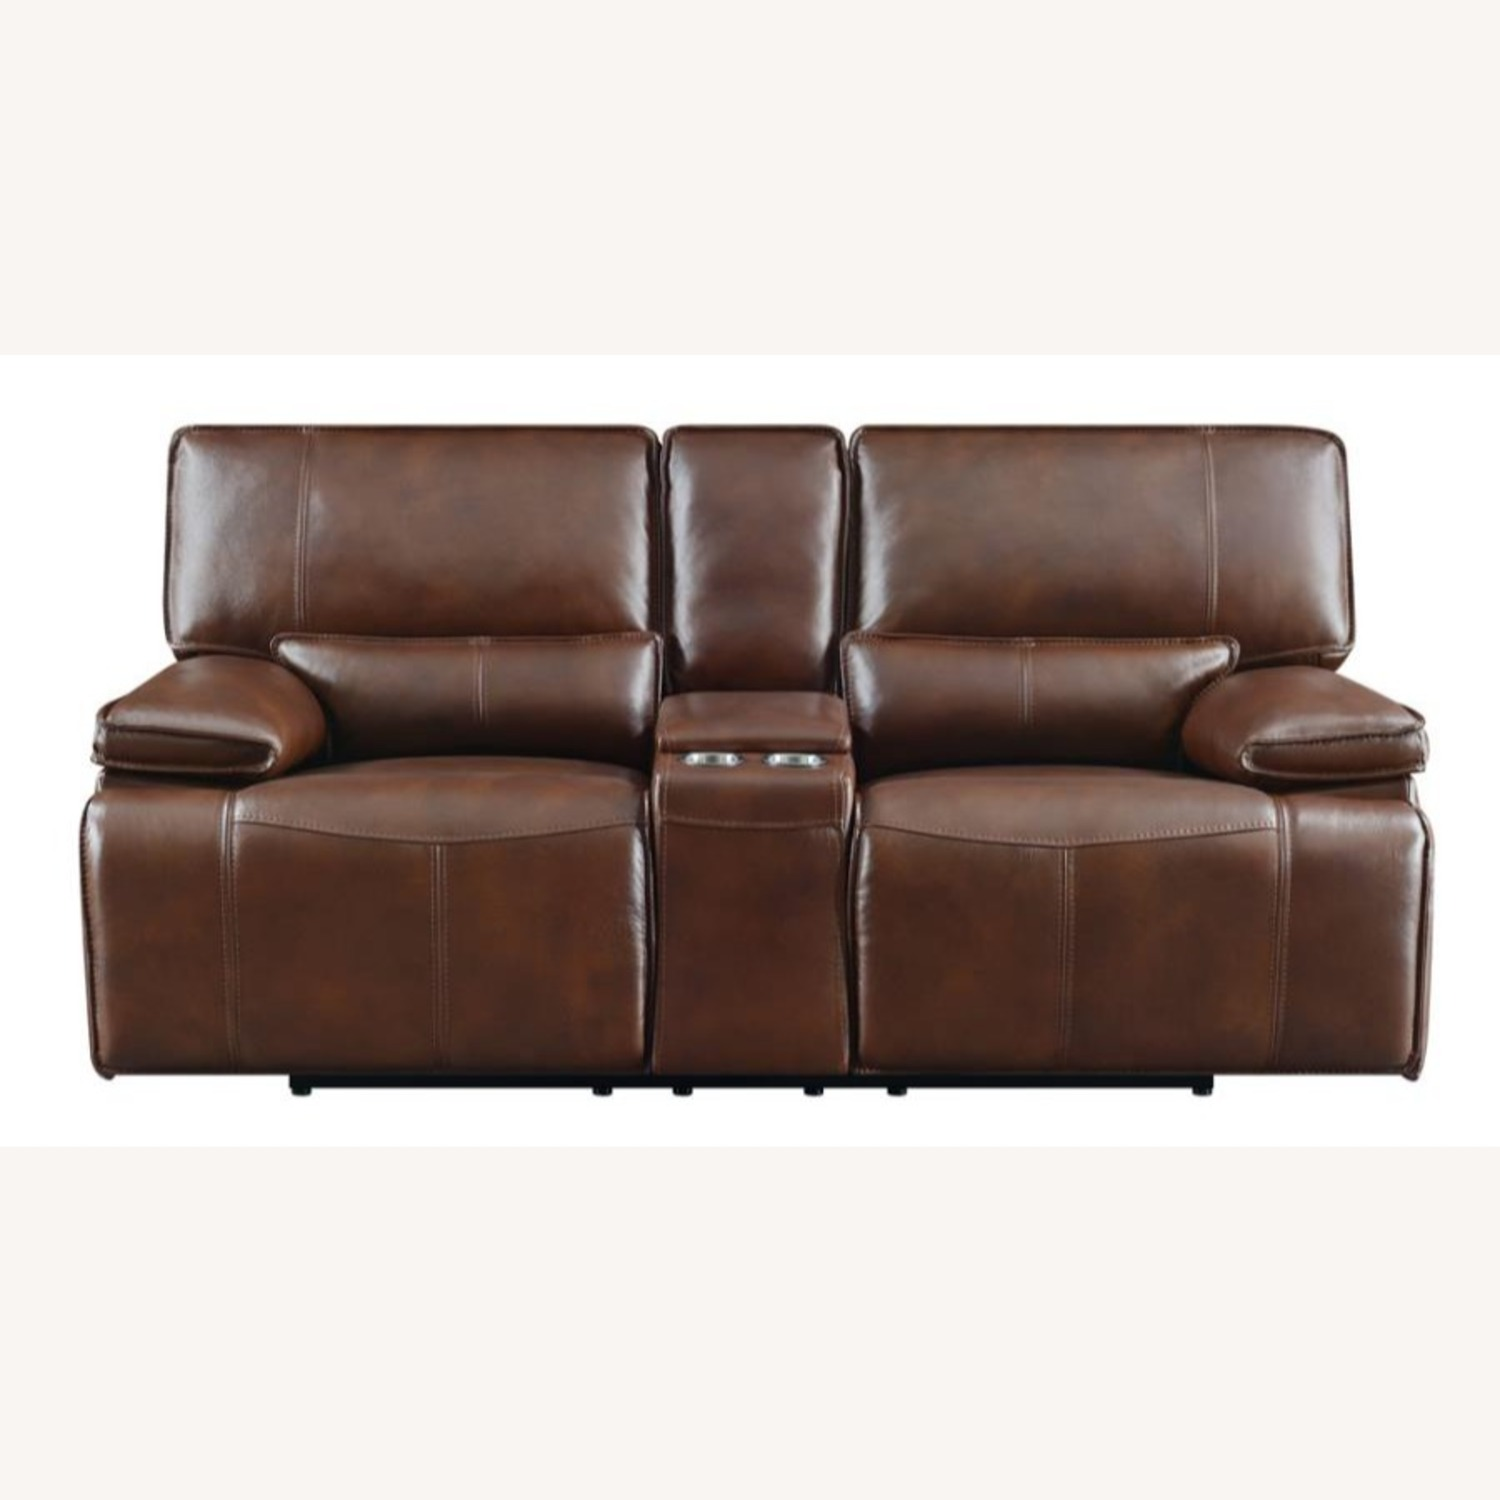 Power Loveseat In Saddle Brown W/ Console - image-2